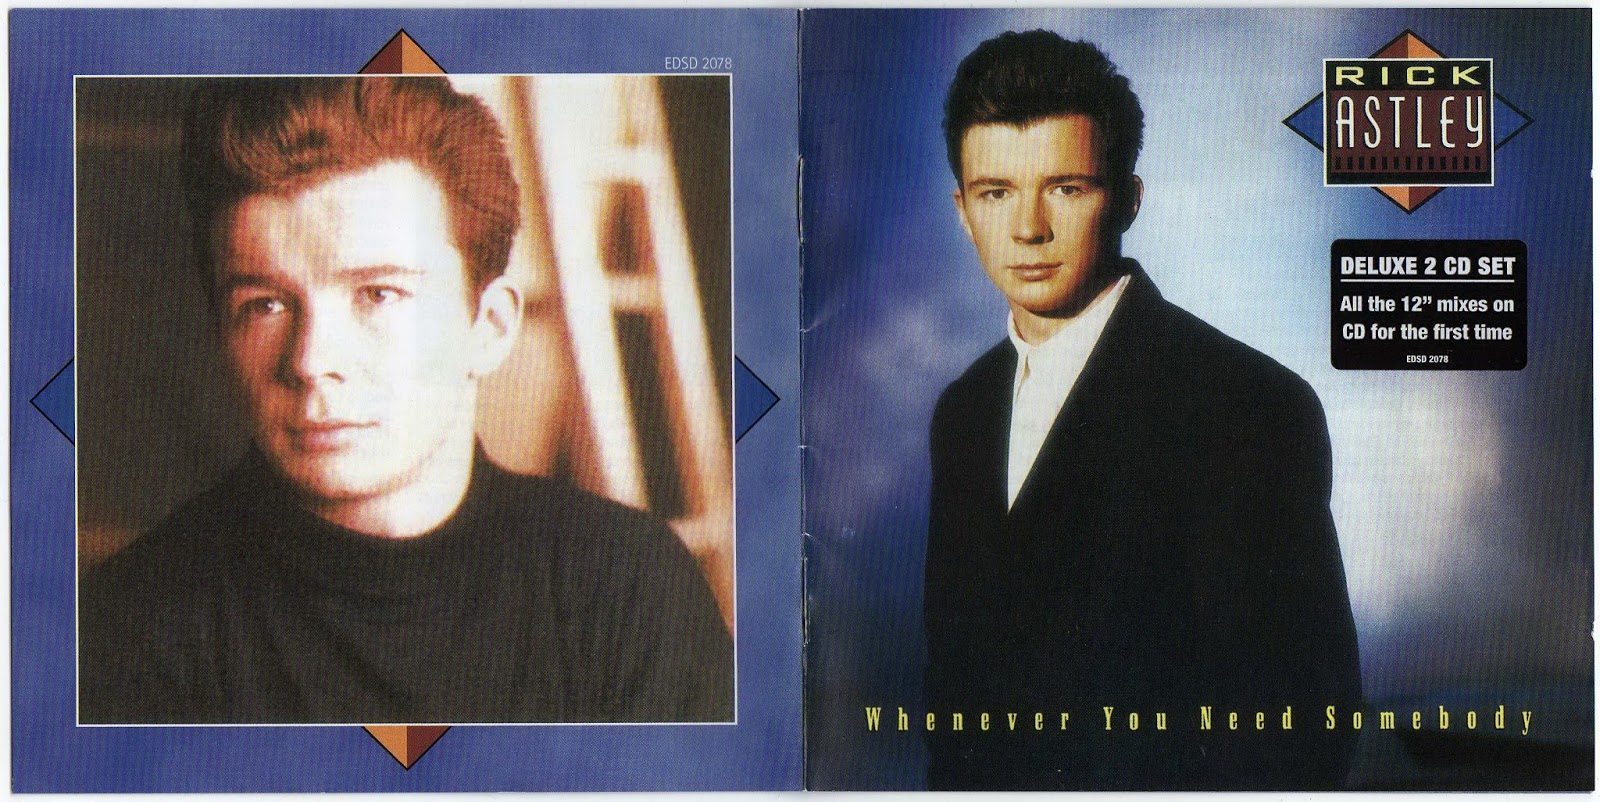 193 Udio Music Classic Rick Astley 1987 Whenever You Need